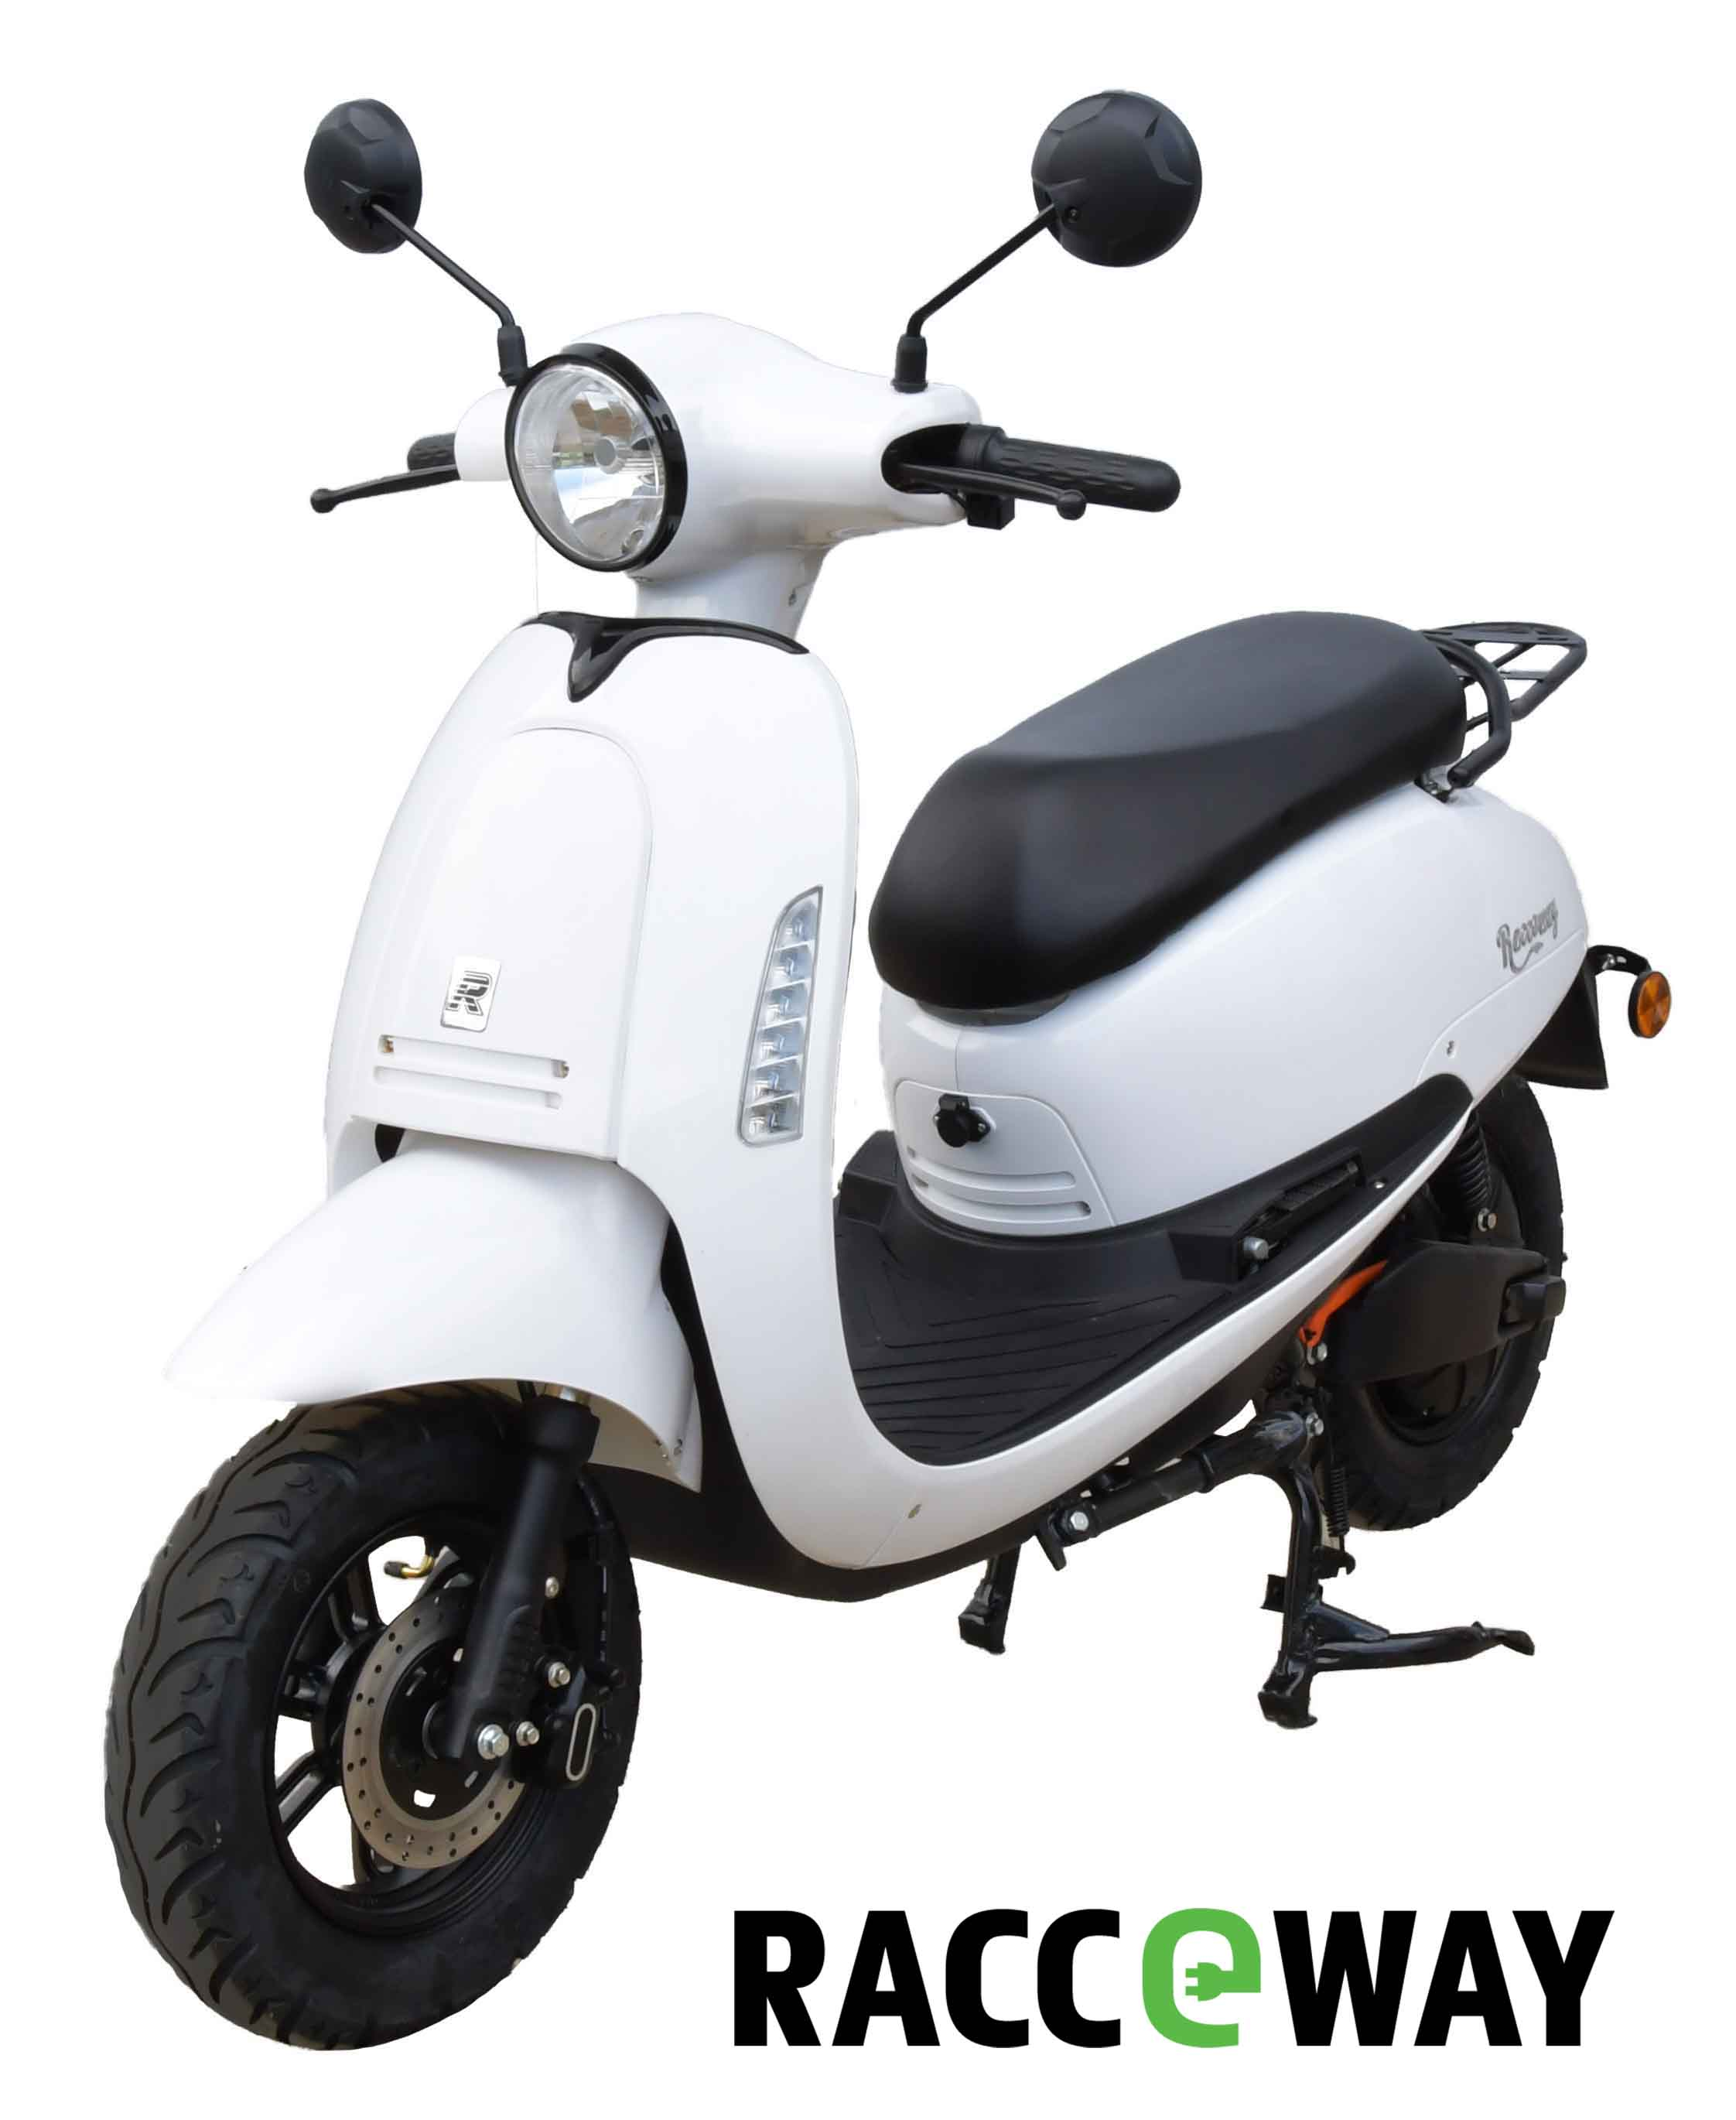 https://www.motoe.sk/inshop/catalogue/products/pictures/motoe-8-04_a1.jpg?timestamp=20210924110331